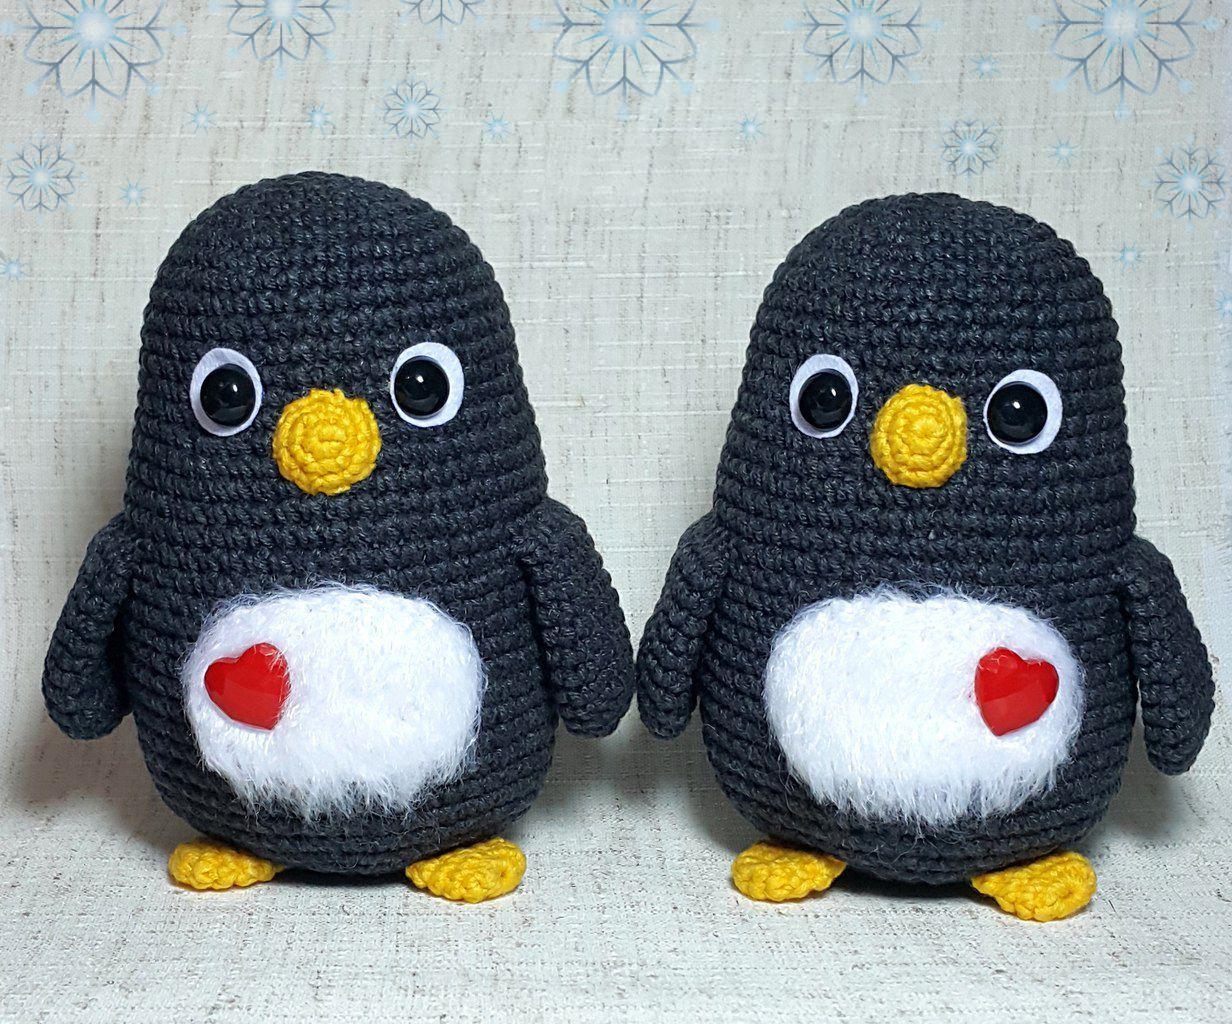 Amigurumi Olaf Tutorial : Baby penguin amigurumi pattern amigurumi patterns penguins and